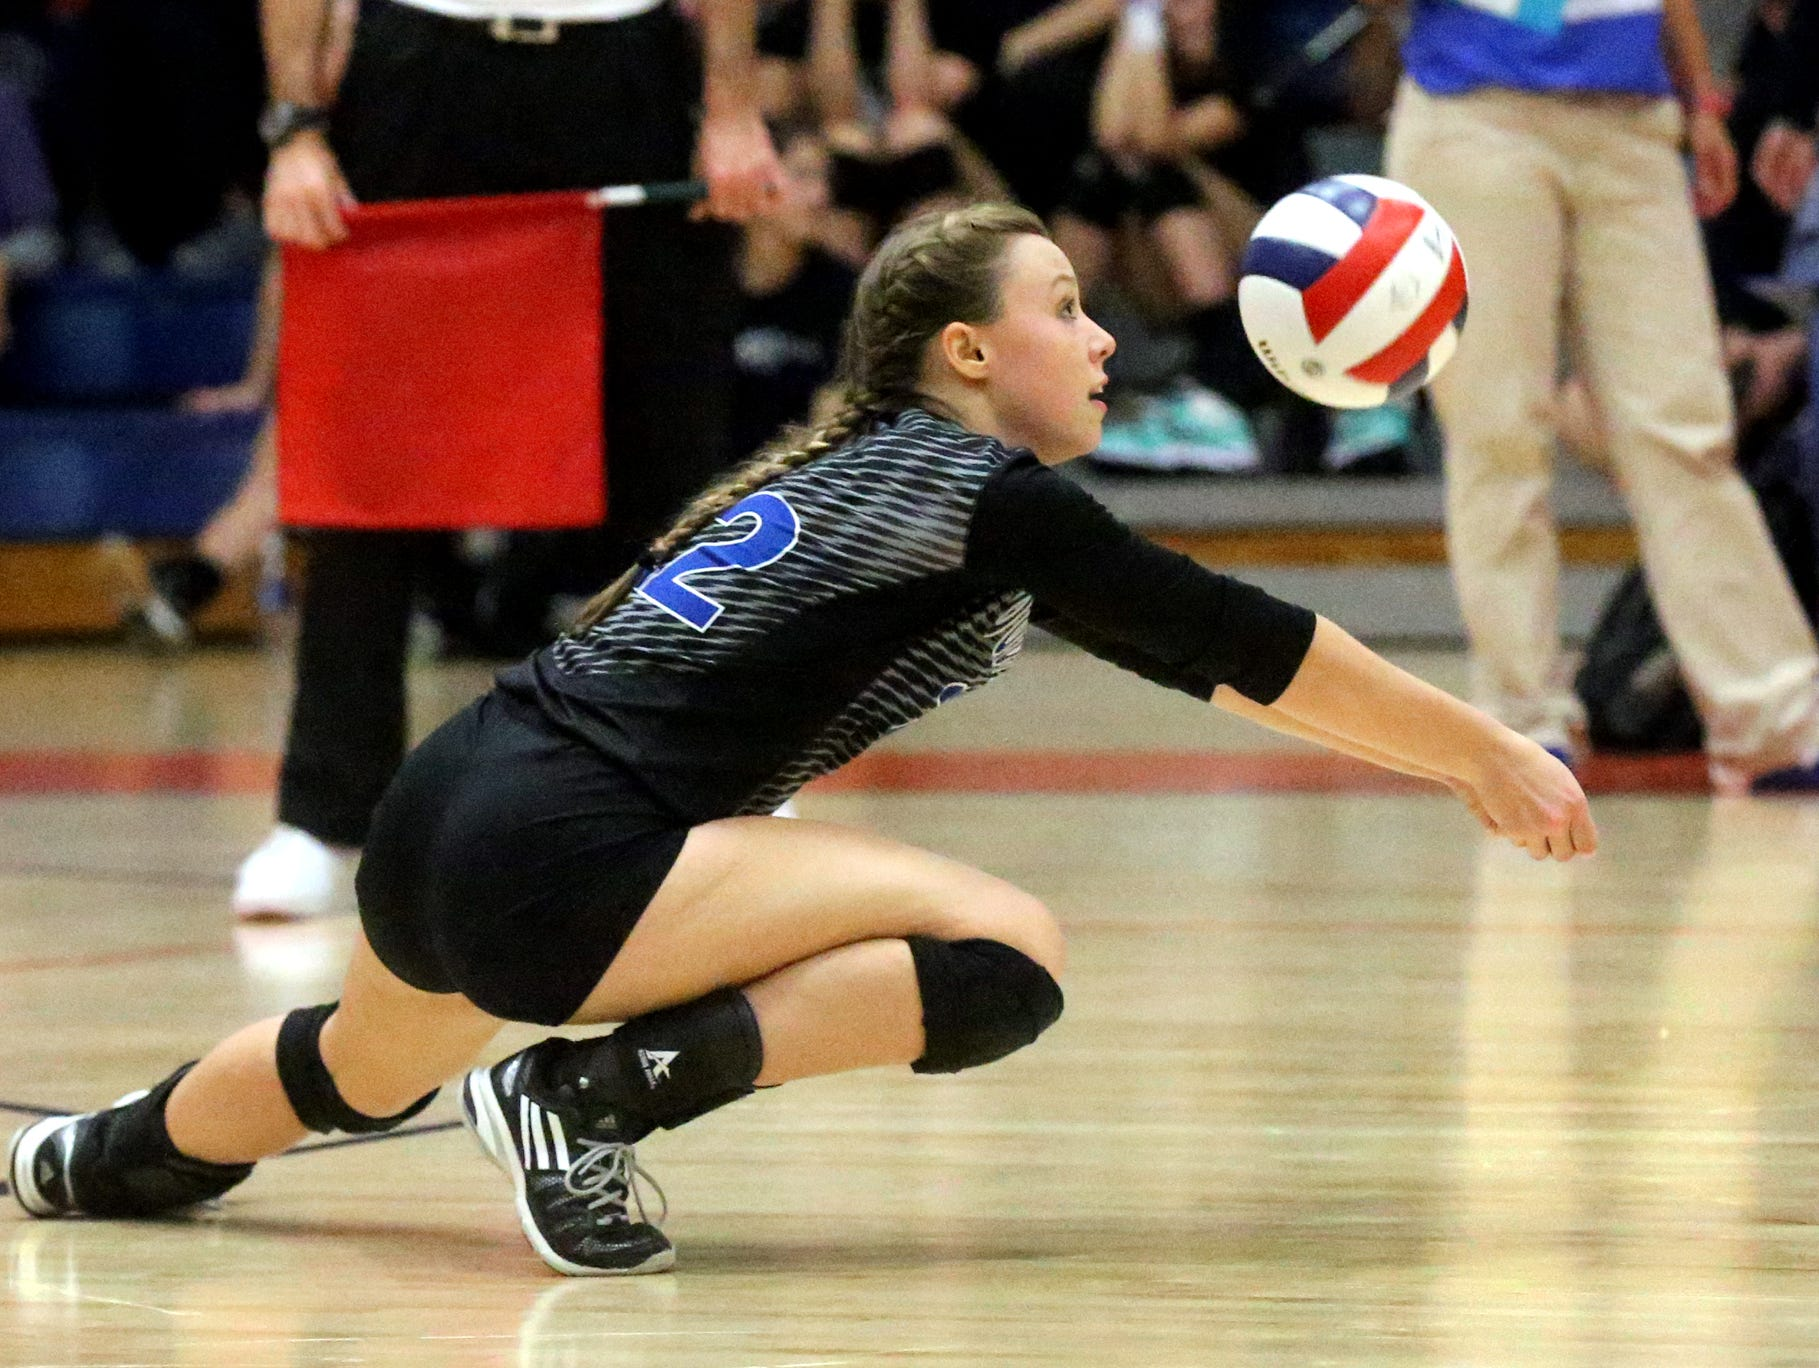 Goodpasture's Tatum Fox dives for a dig during the first round of the TSSAA Class A state volleyball tournament against South Greene Wednesday at Blackman.